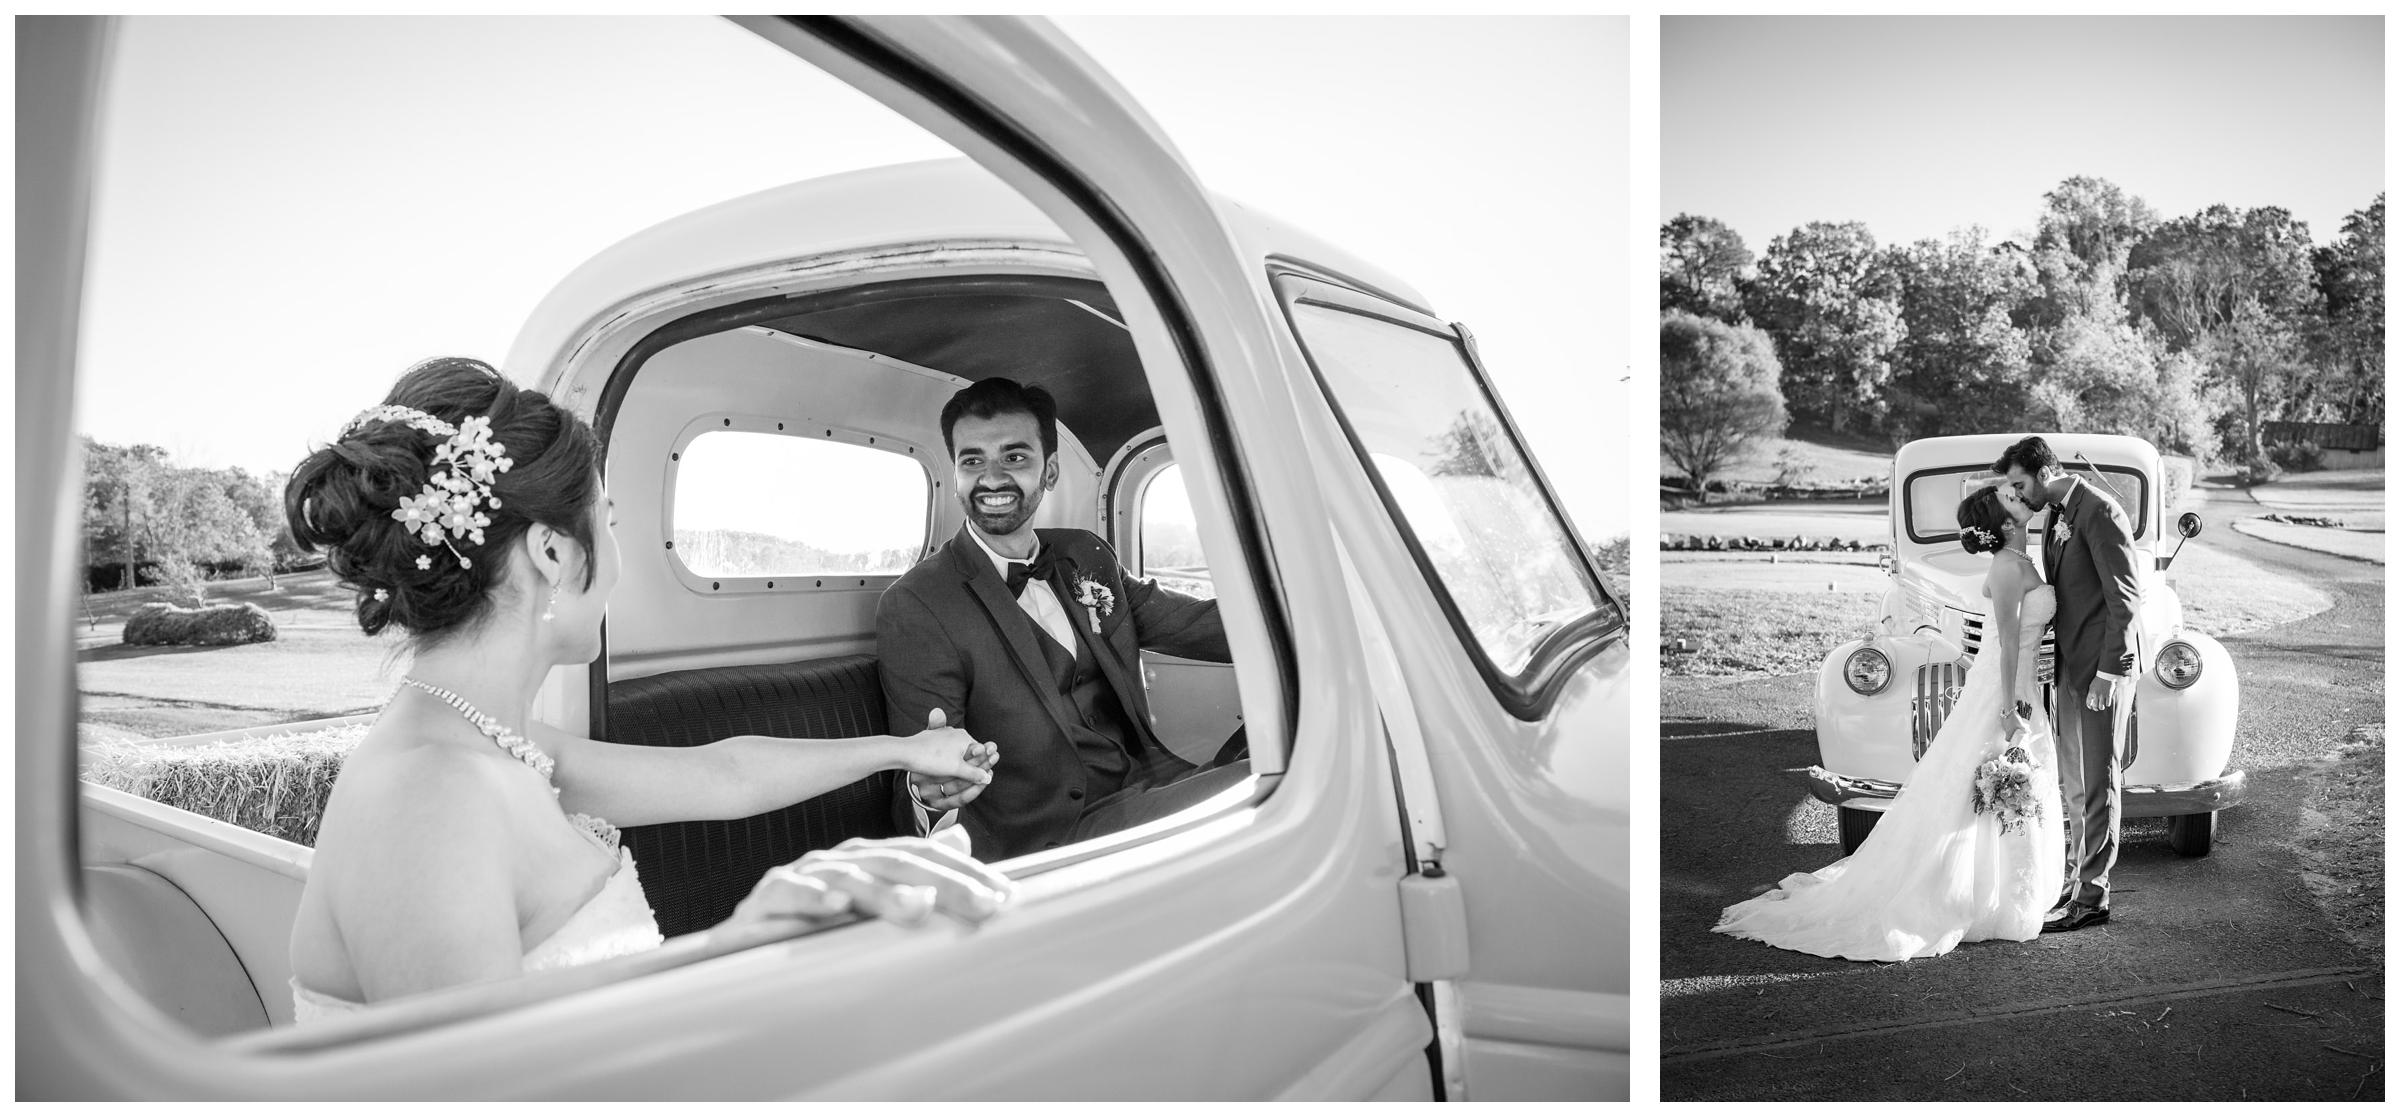 Bride and groom with vintage truck during rustic fall wedding in Northern Virginia.